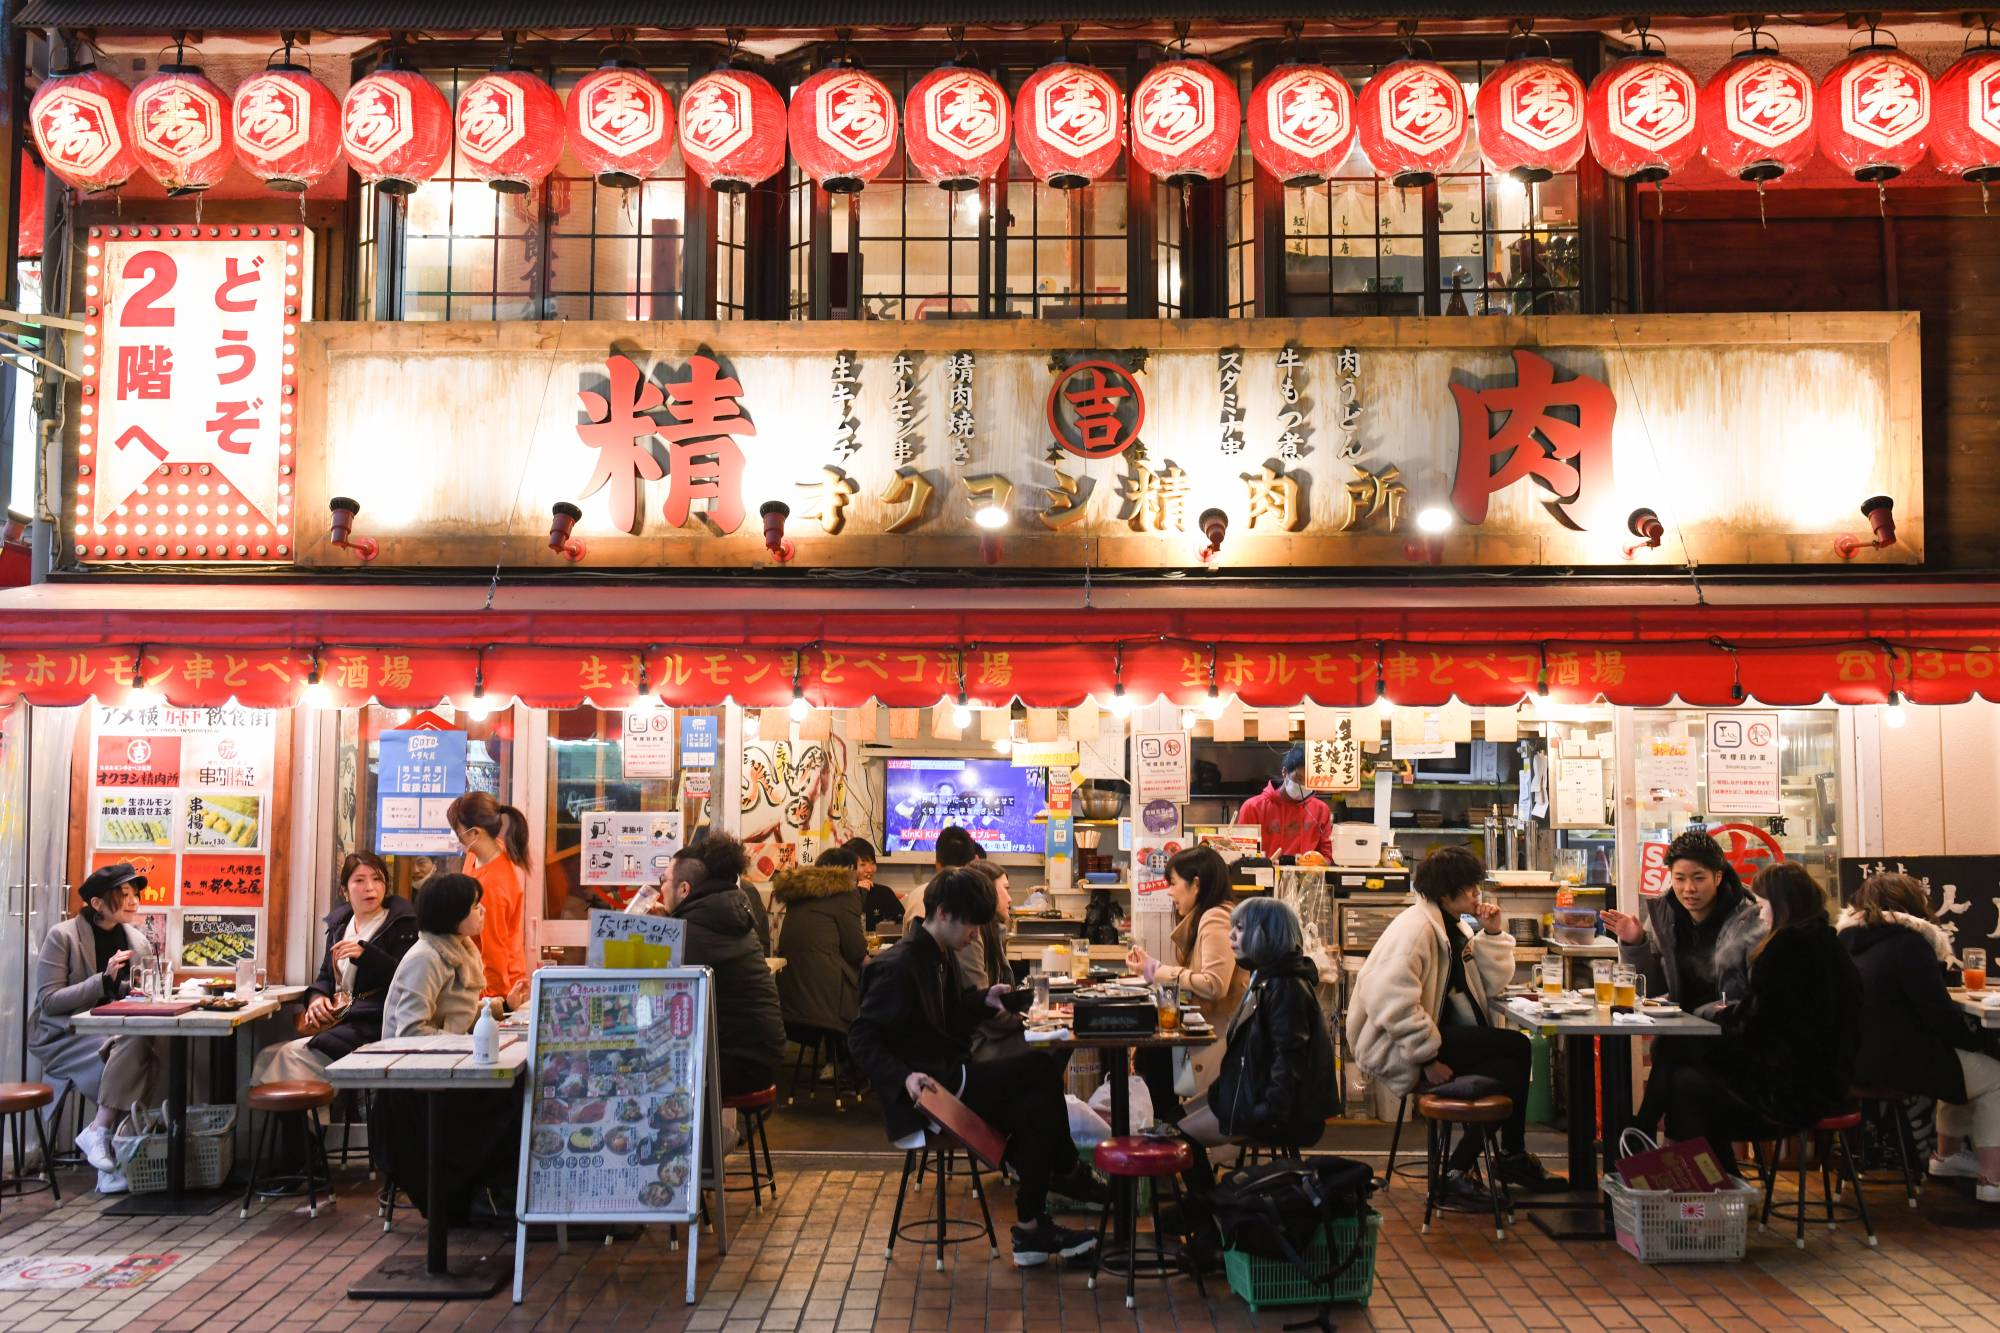 People dine at a restaurant at the Ameya Yokocho market in the Ueno district of Tokyo on Dec. 30. While many restaurants in Tokyo are following the requests in return for subsidies, others are starting to break ranks. | BLOOMBERG